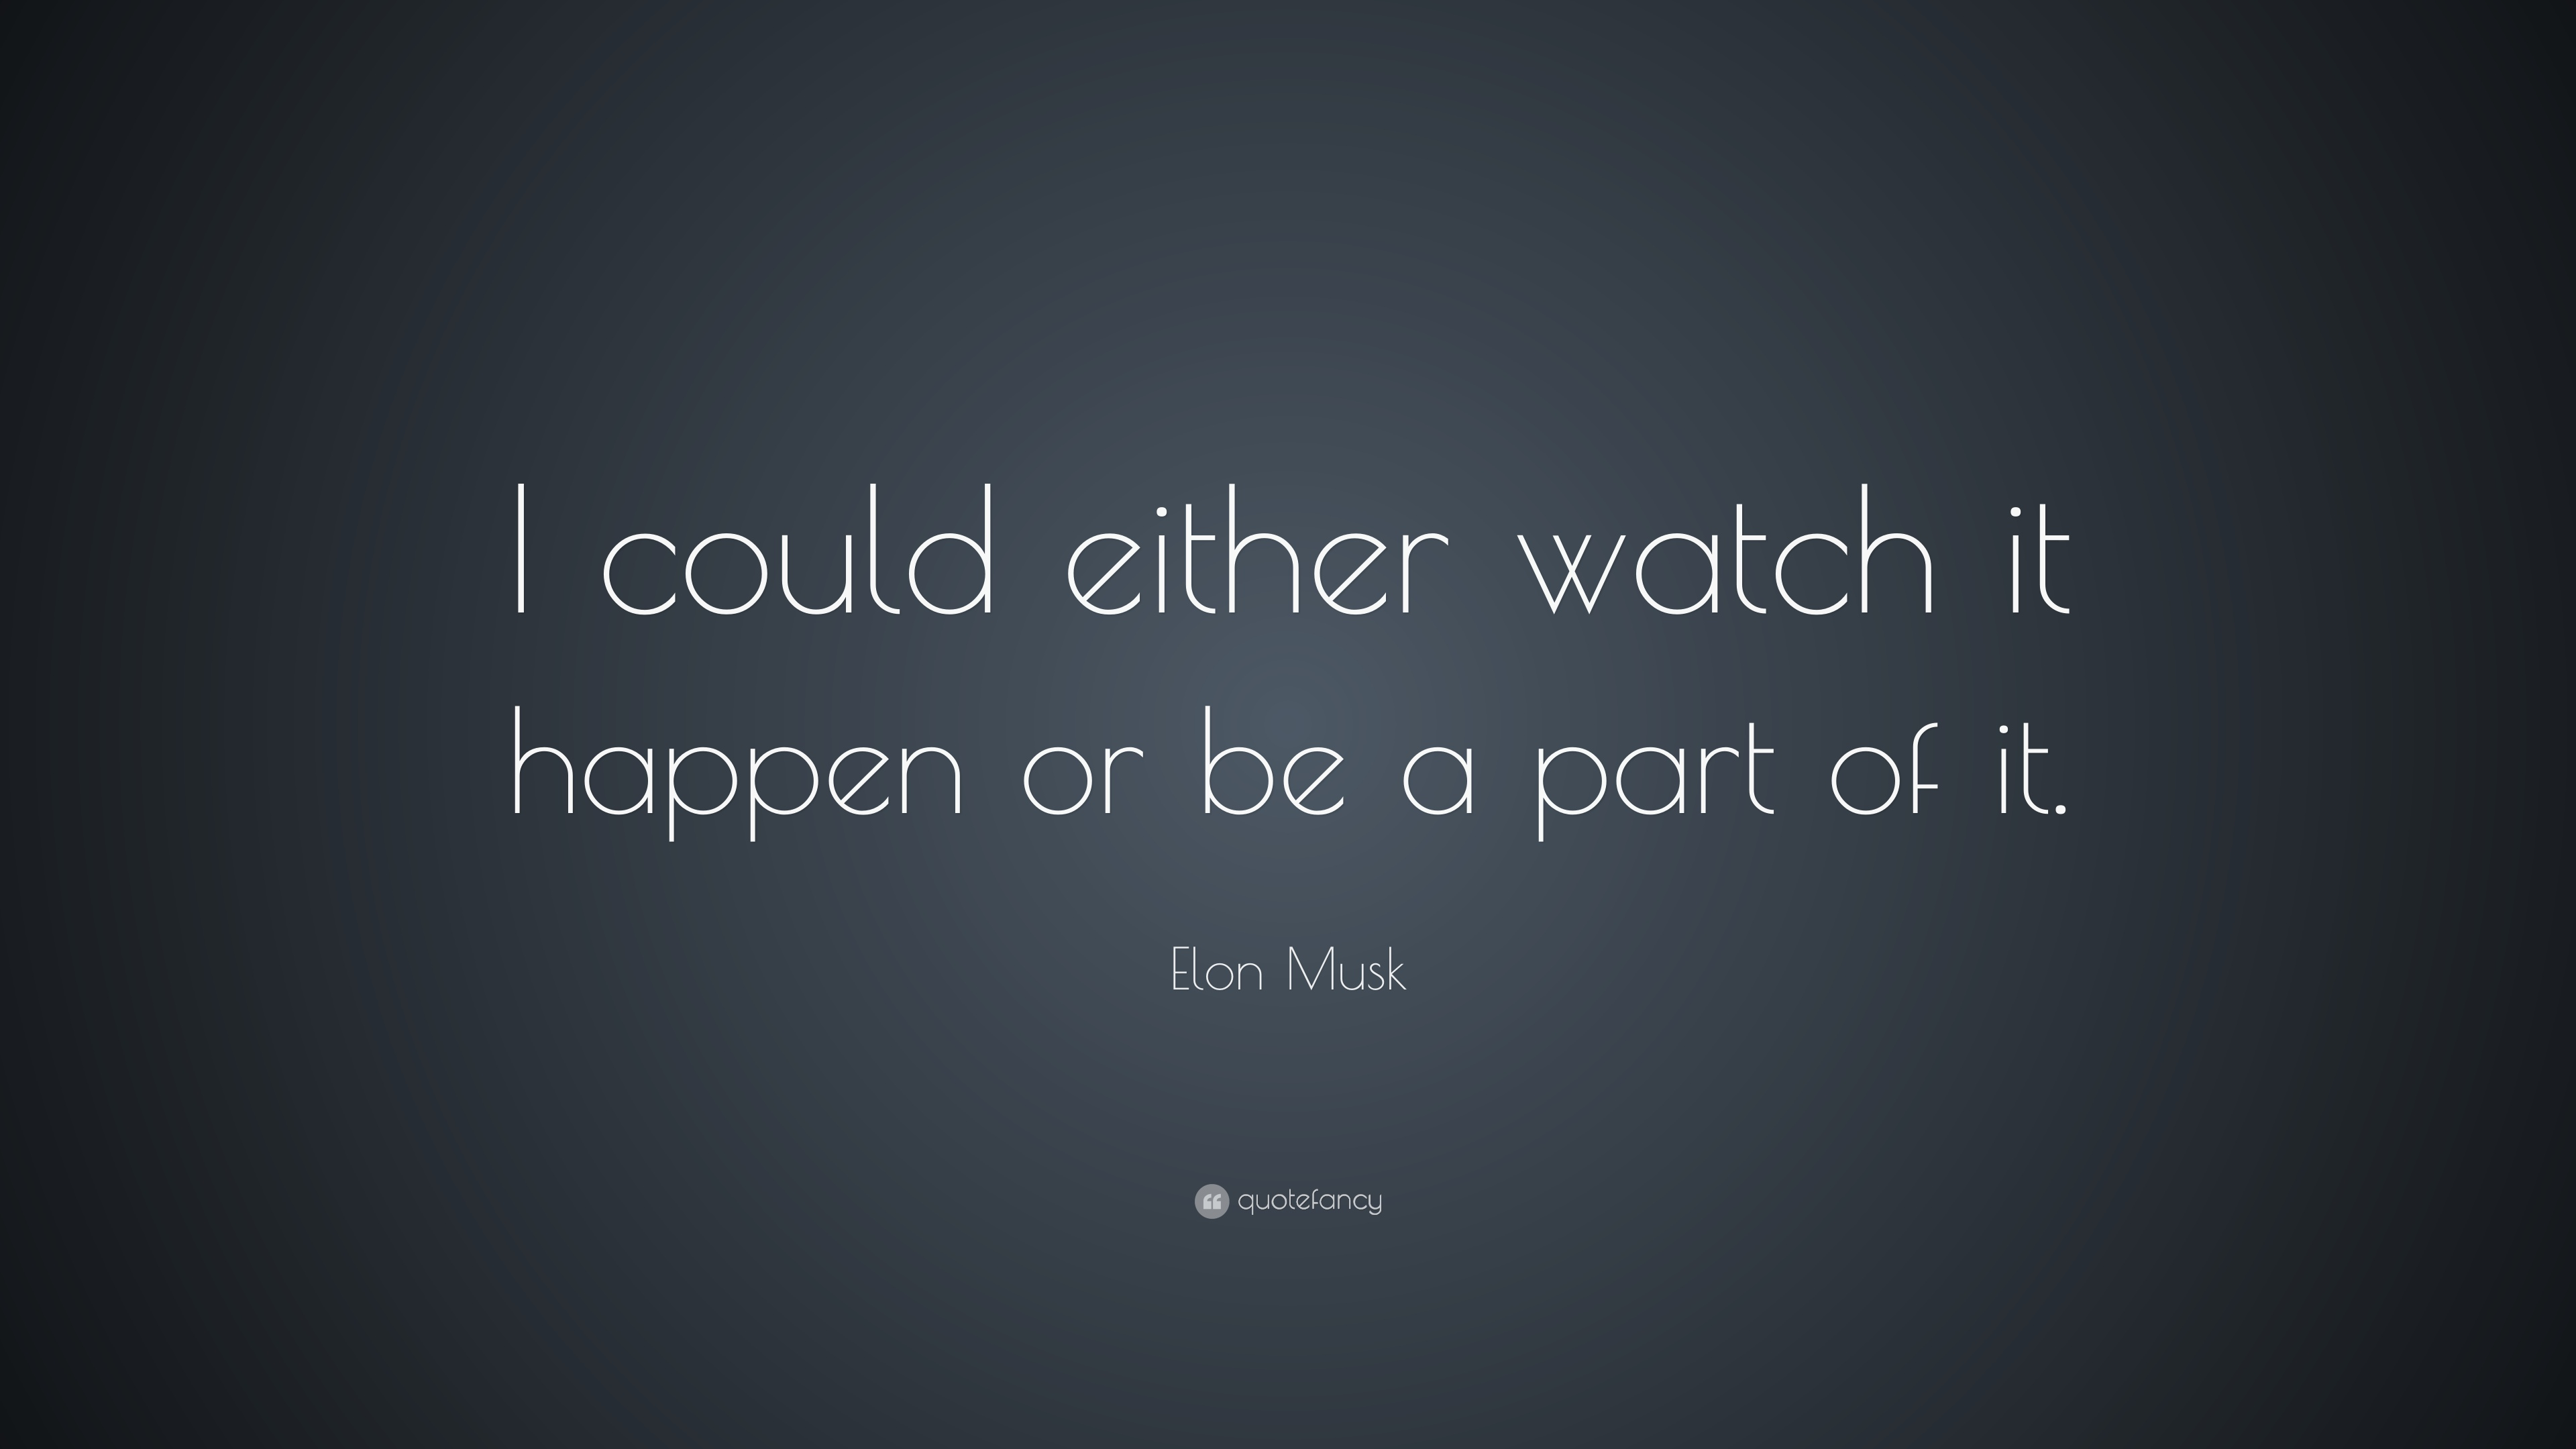 Bill Gates Quotes On Success Wallpaper Elon Musk Quote I Could Either Watch It Happen Or Be A